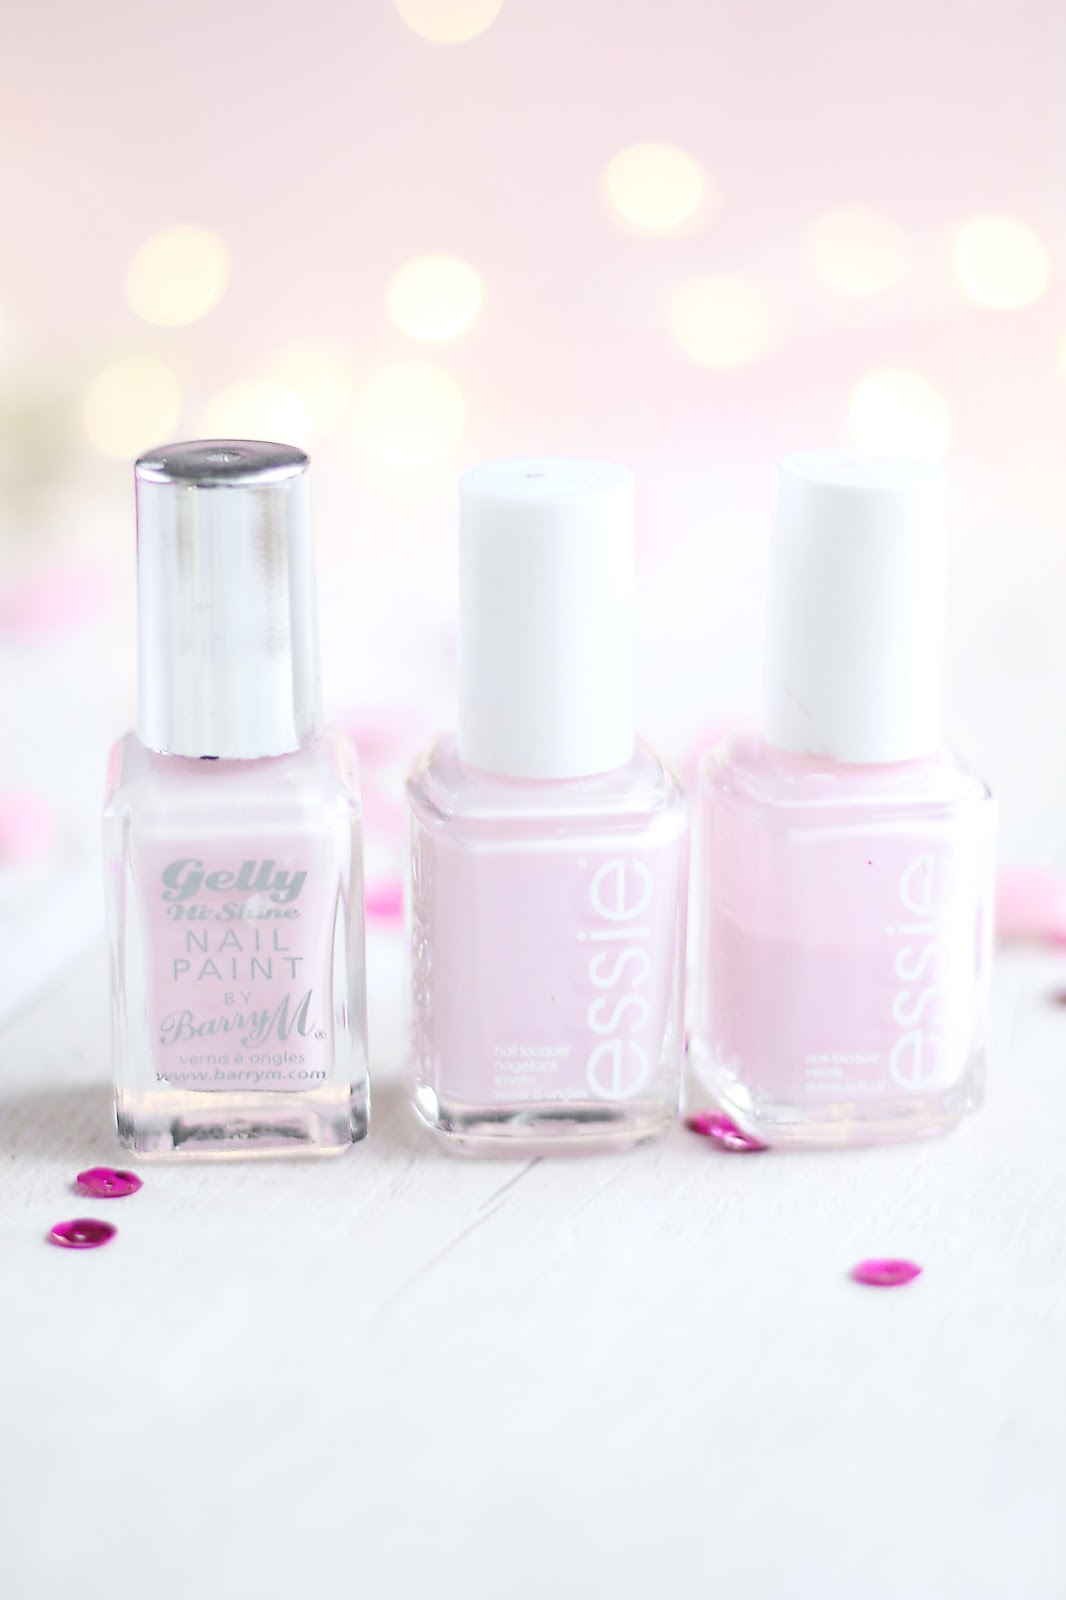 Beauty, Nails, Drugstore, Essie, wedding nails, engagement polish nails, essie fiji, essie minimalstic, barry m rose hip, pink, blush pink, baby pink nail polish